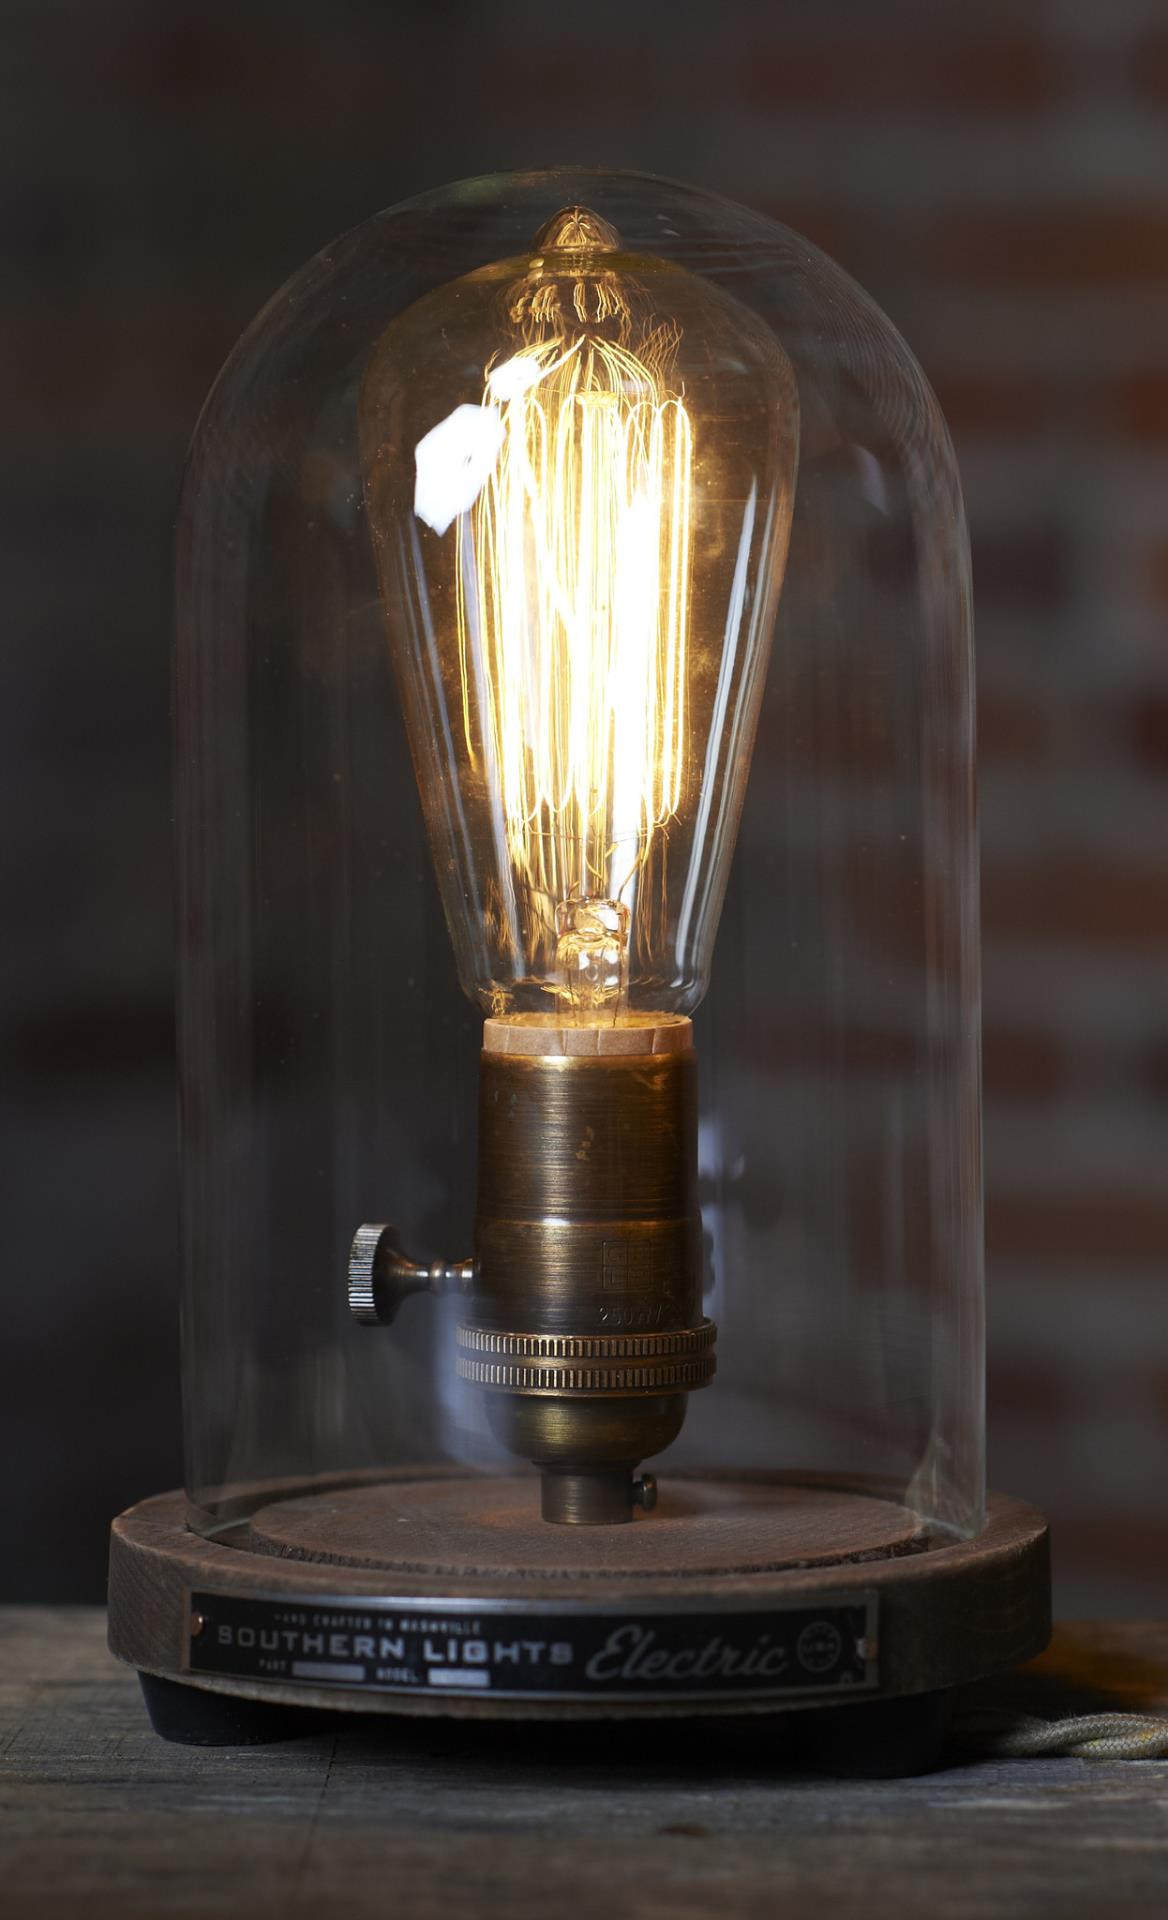 The Original Rider Waite Deck By Arthur Edward Waite: The Original Bell Jar Table Lamp